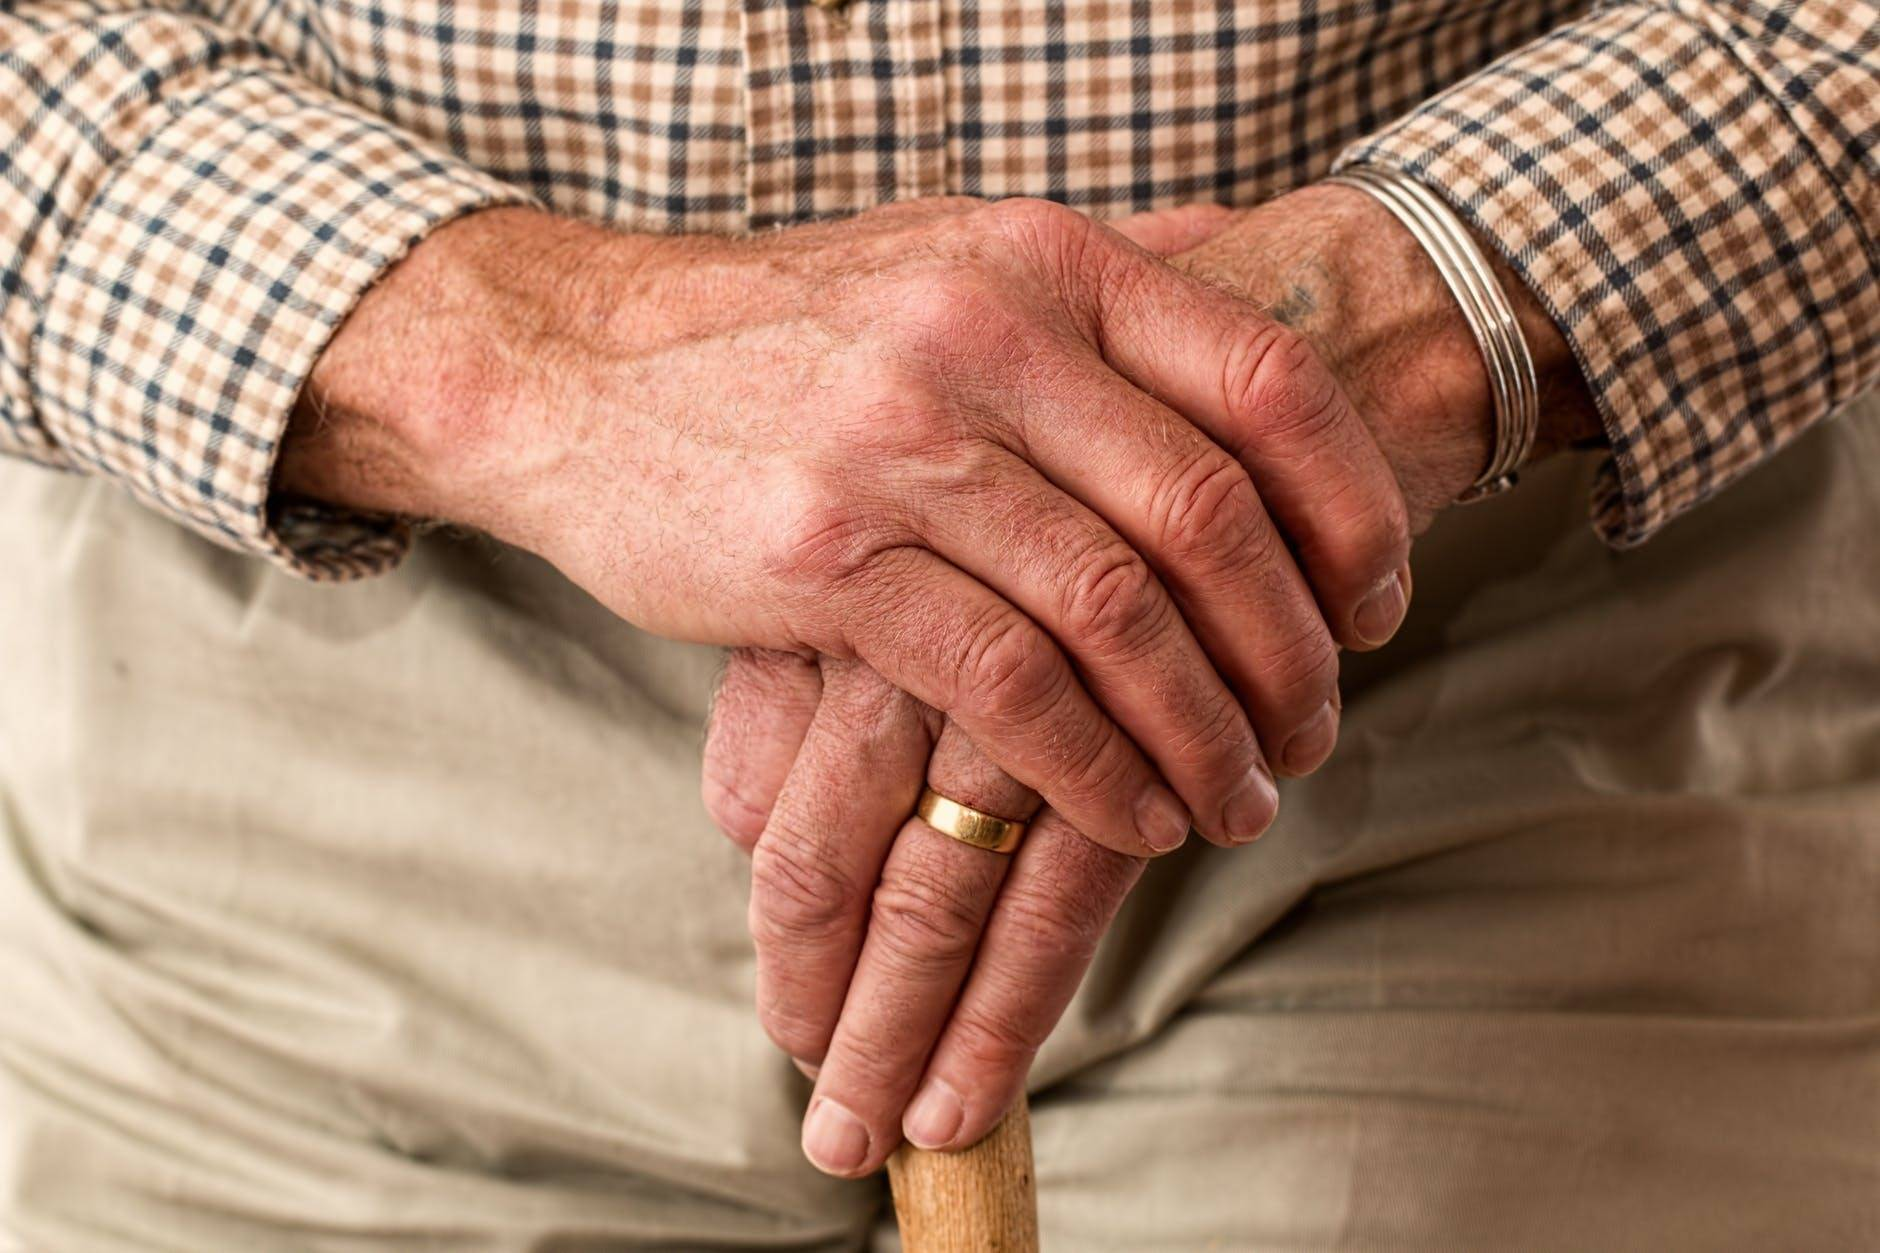 Elderly man with crossed hands, cane, and wedding band